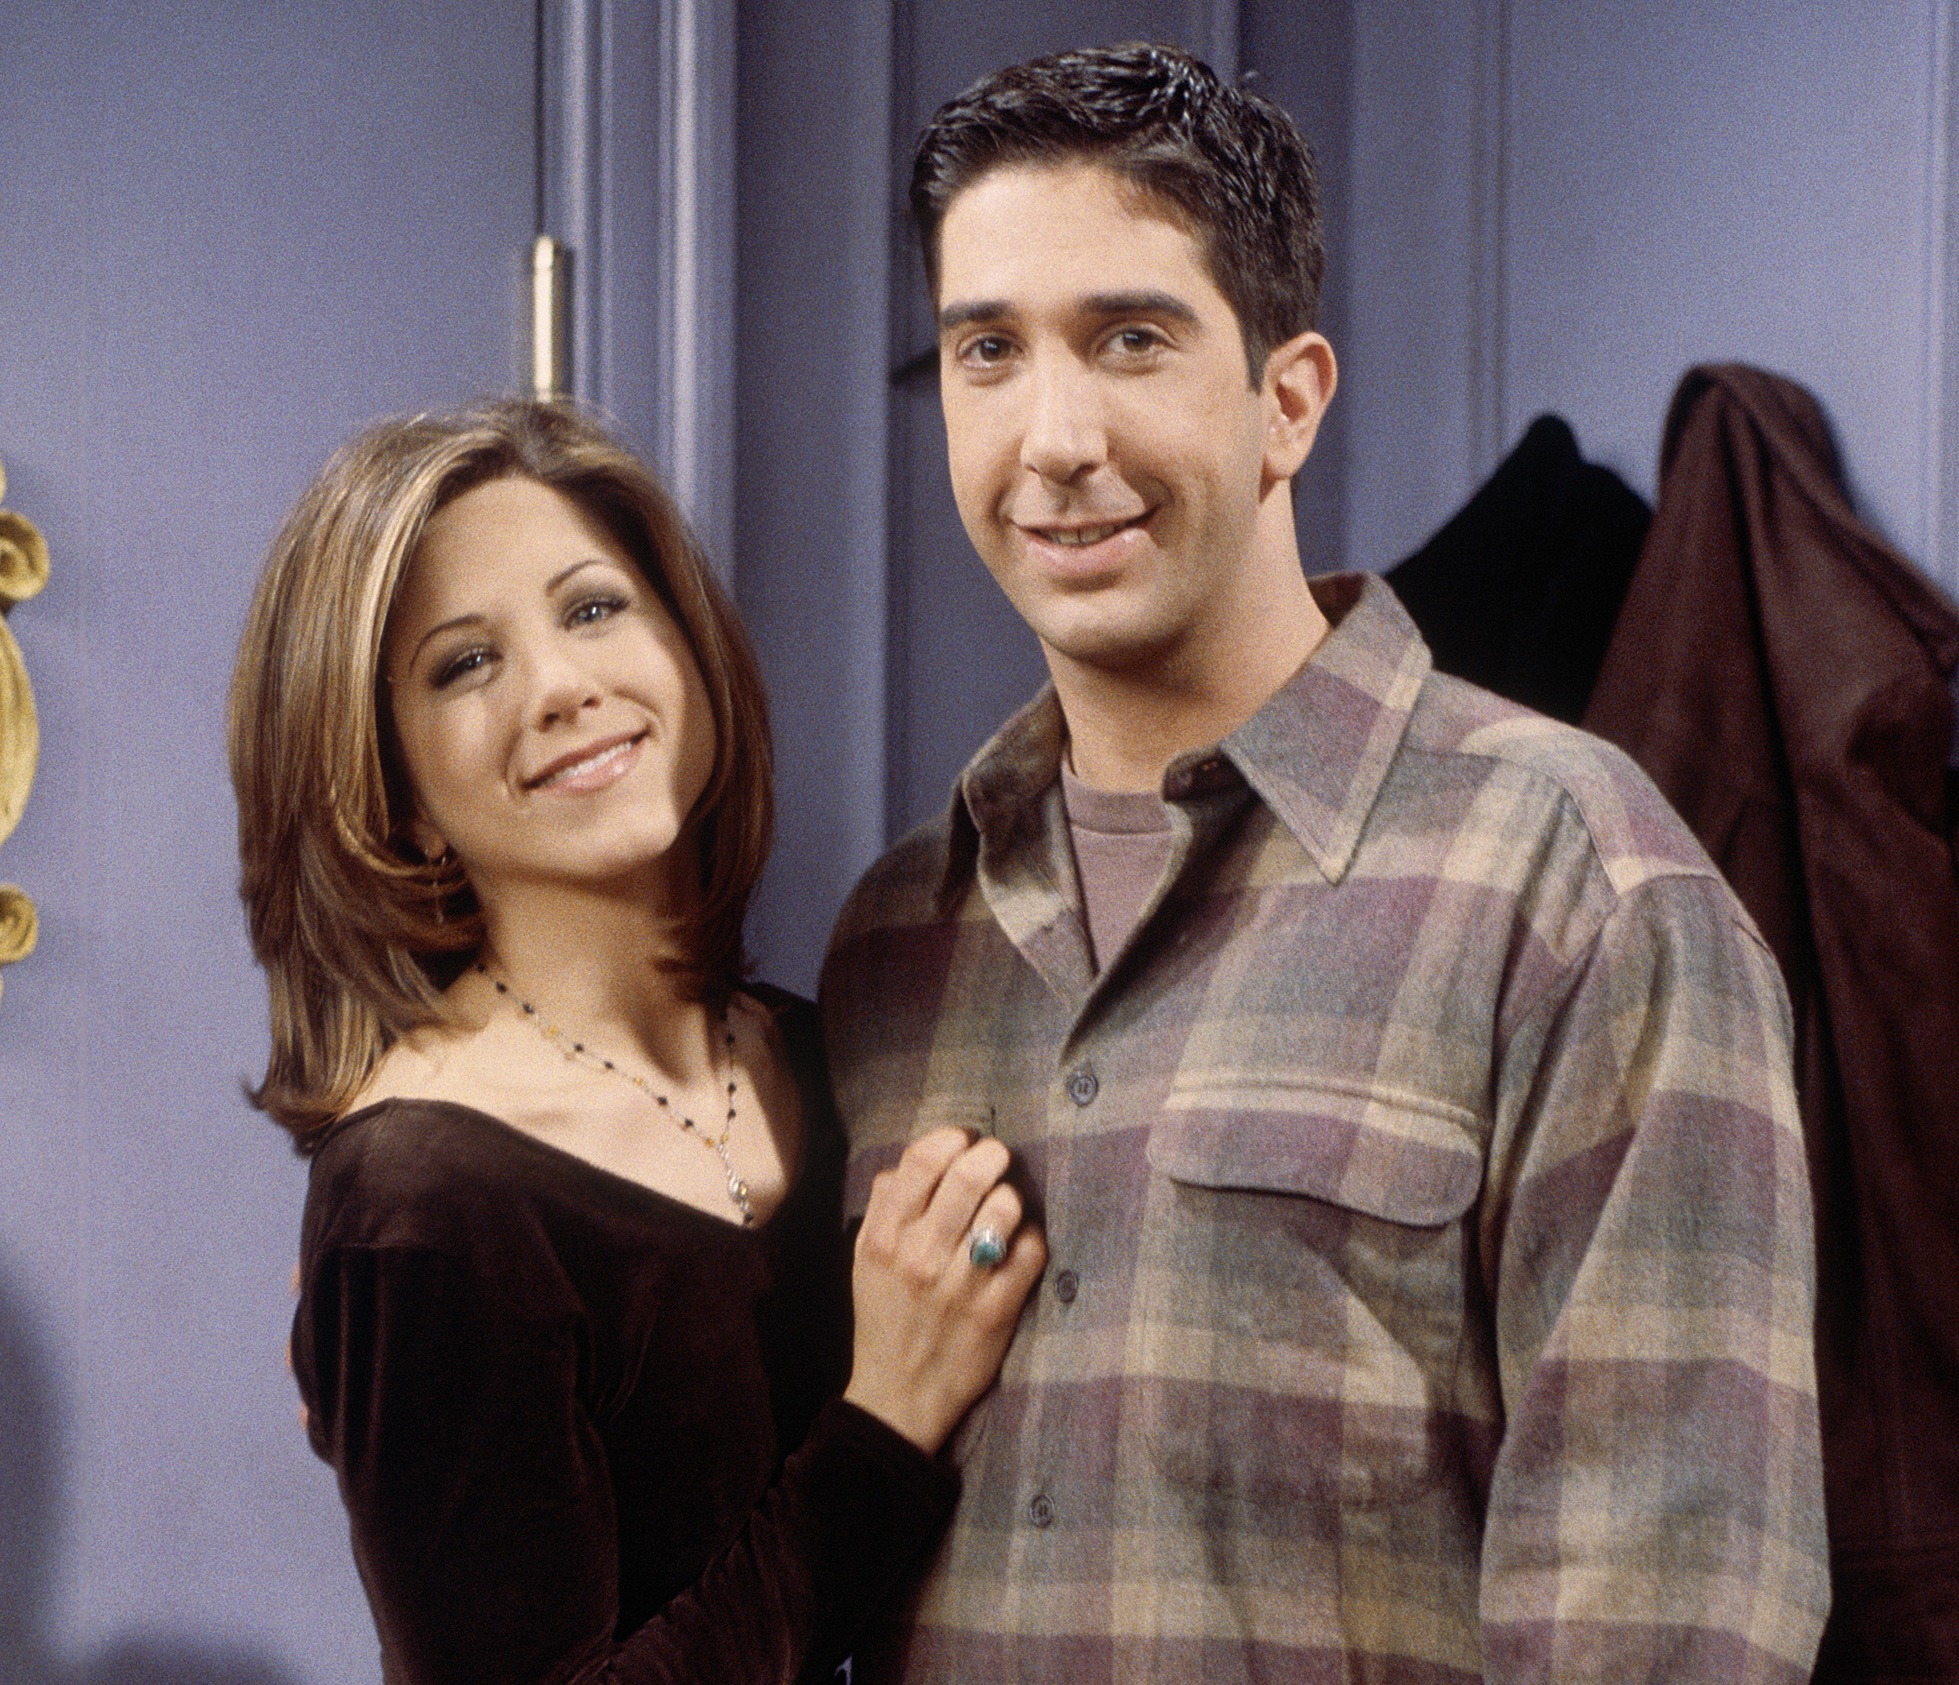 ross and rachel friends joke